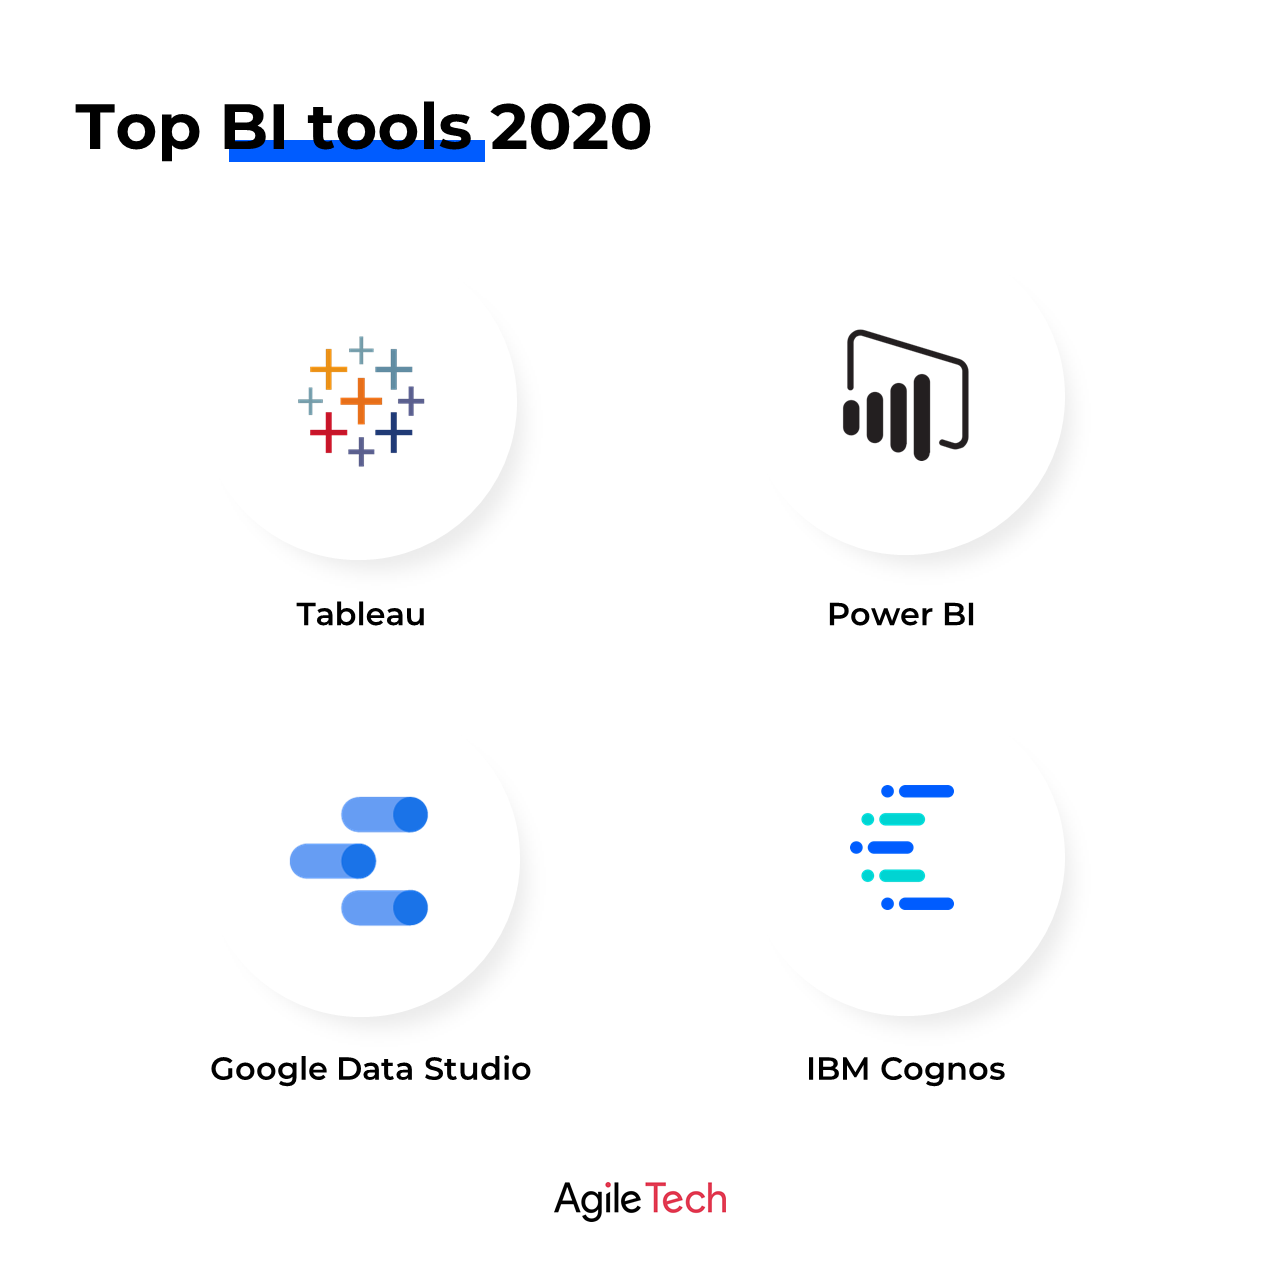 business intelligence tools, top business intelligence tools and techniques 2020